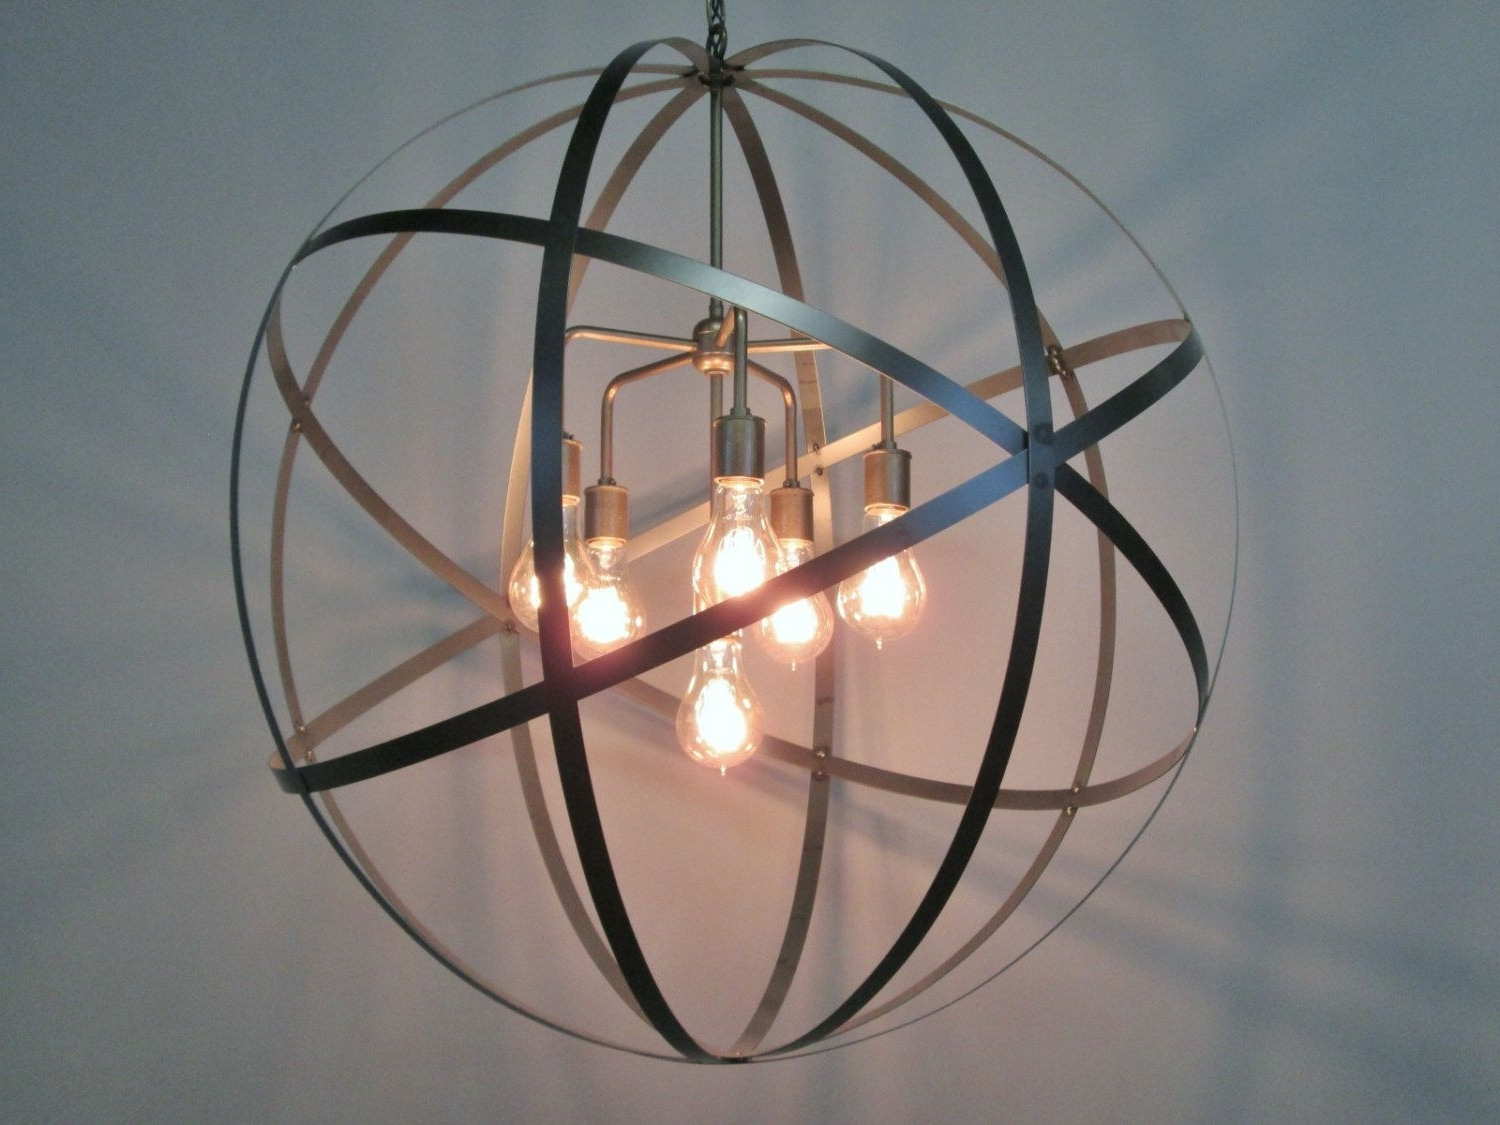 Beautiful Orb Chandelier For Home Decor Lights Ideas: Industrial 30 Throughout Most Current Orb Chandeliers (View 11 of 15)